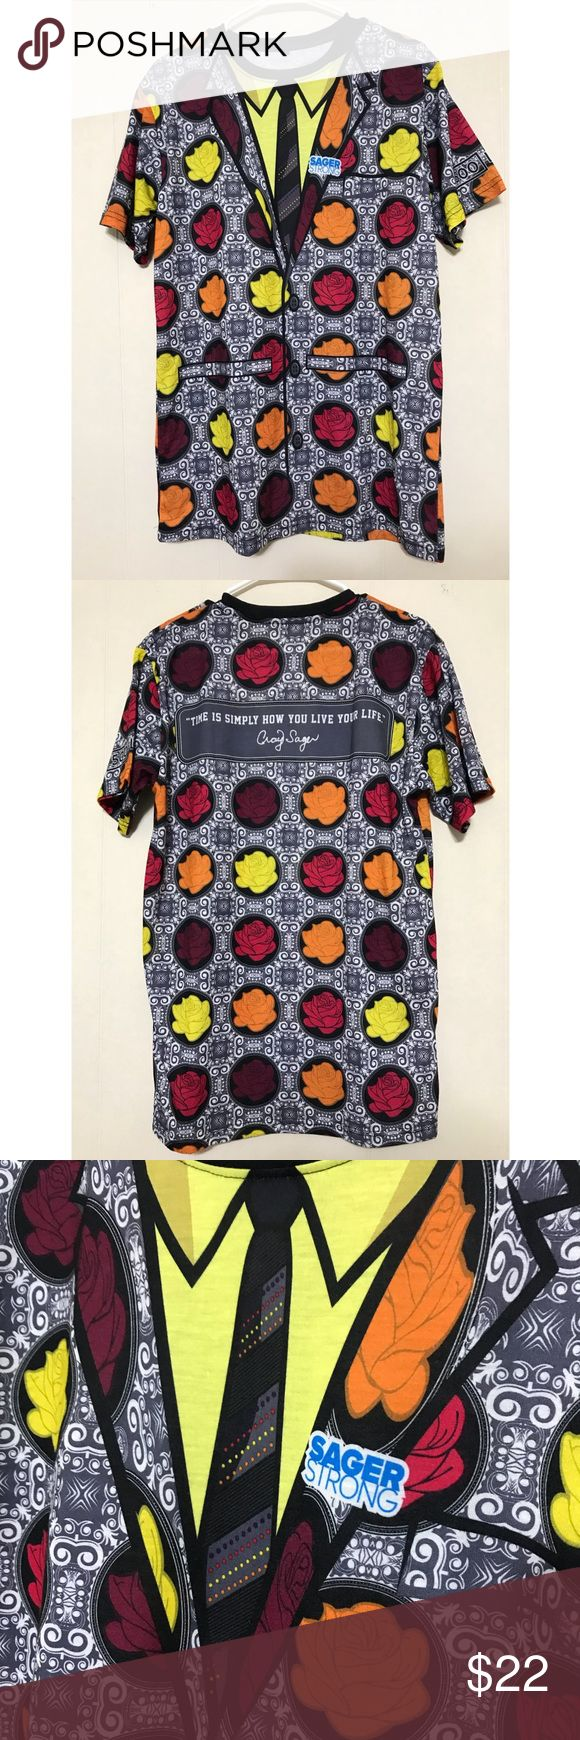 SagerStrong Tee Fun wild Print Tee just like Craig Sager! This awesome Tee was purchased from the Craig Sager Foundation to support leukemia patients and families and also research for other blood cancers.  Shirt is unisex and runs as slim fit as stated size chart. Fits more like a men's shirt. Sager Strong Shirts Tees - Short Sleeve